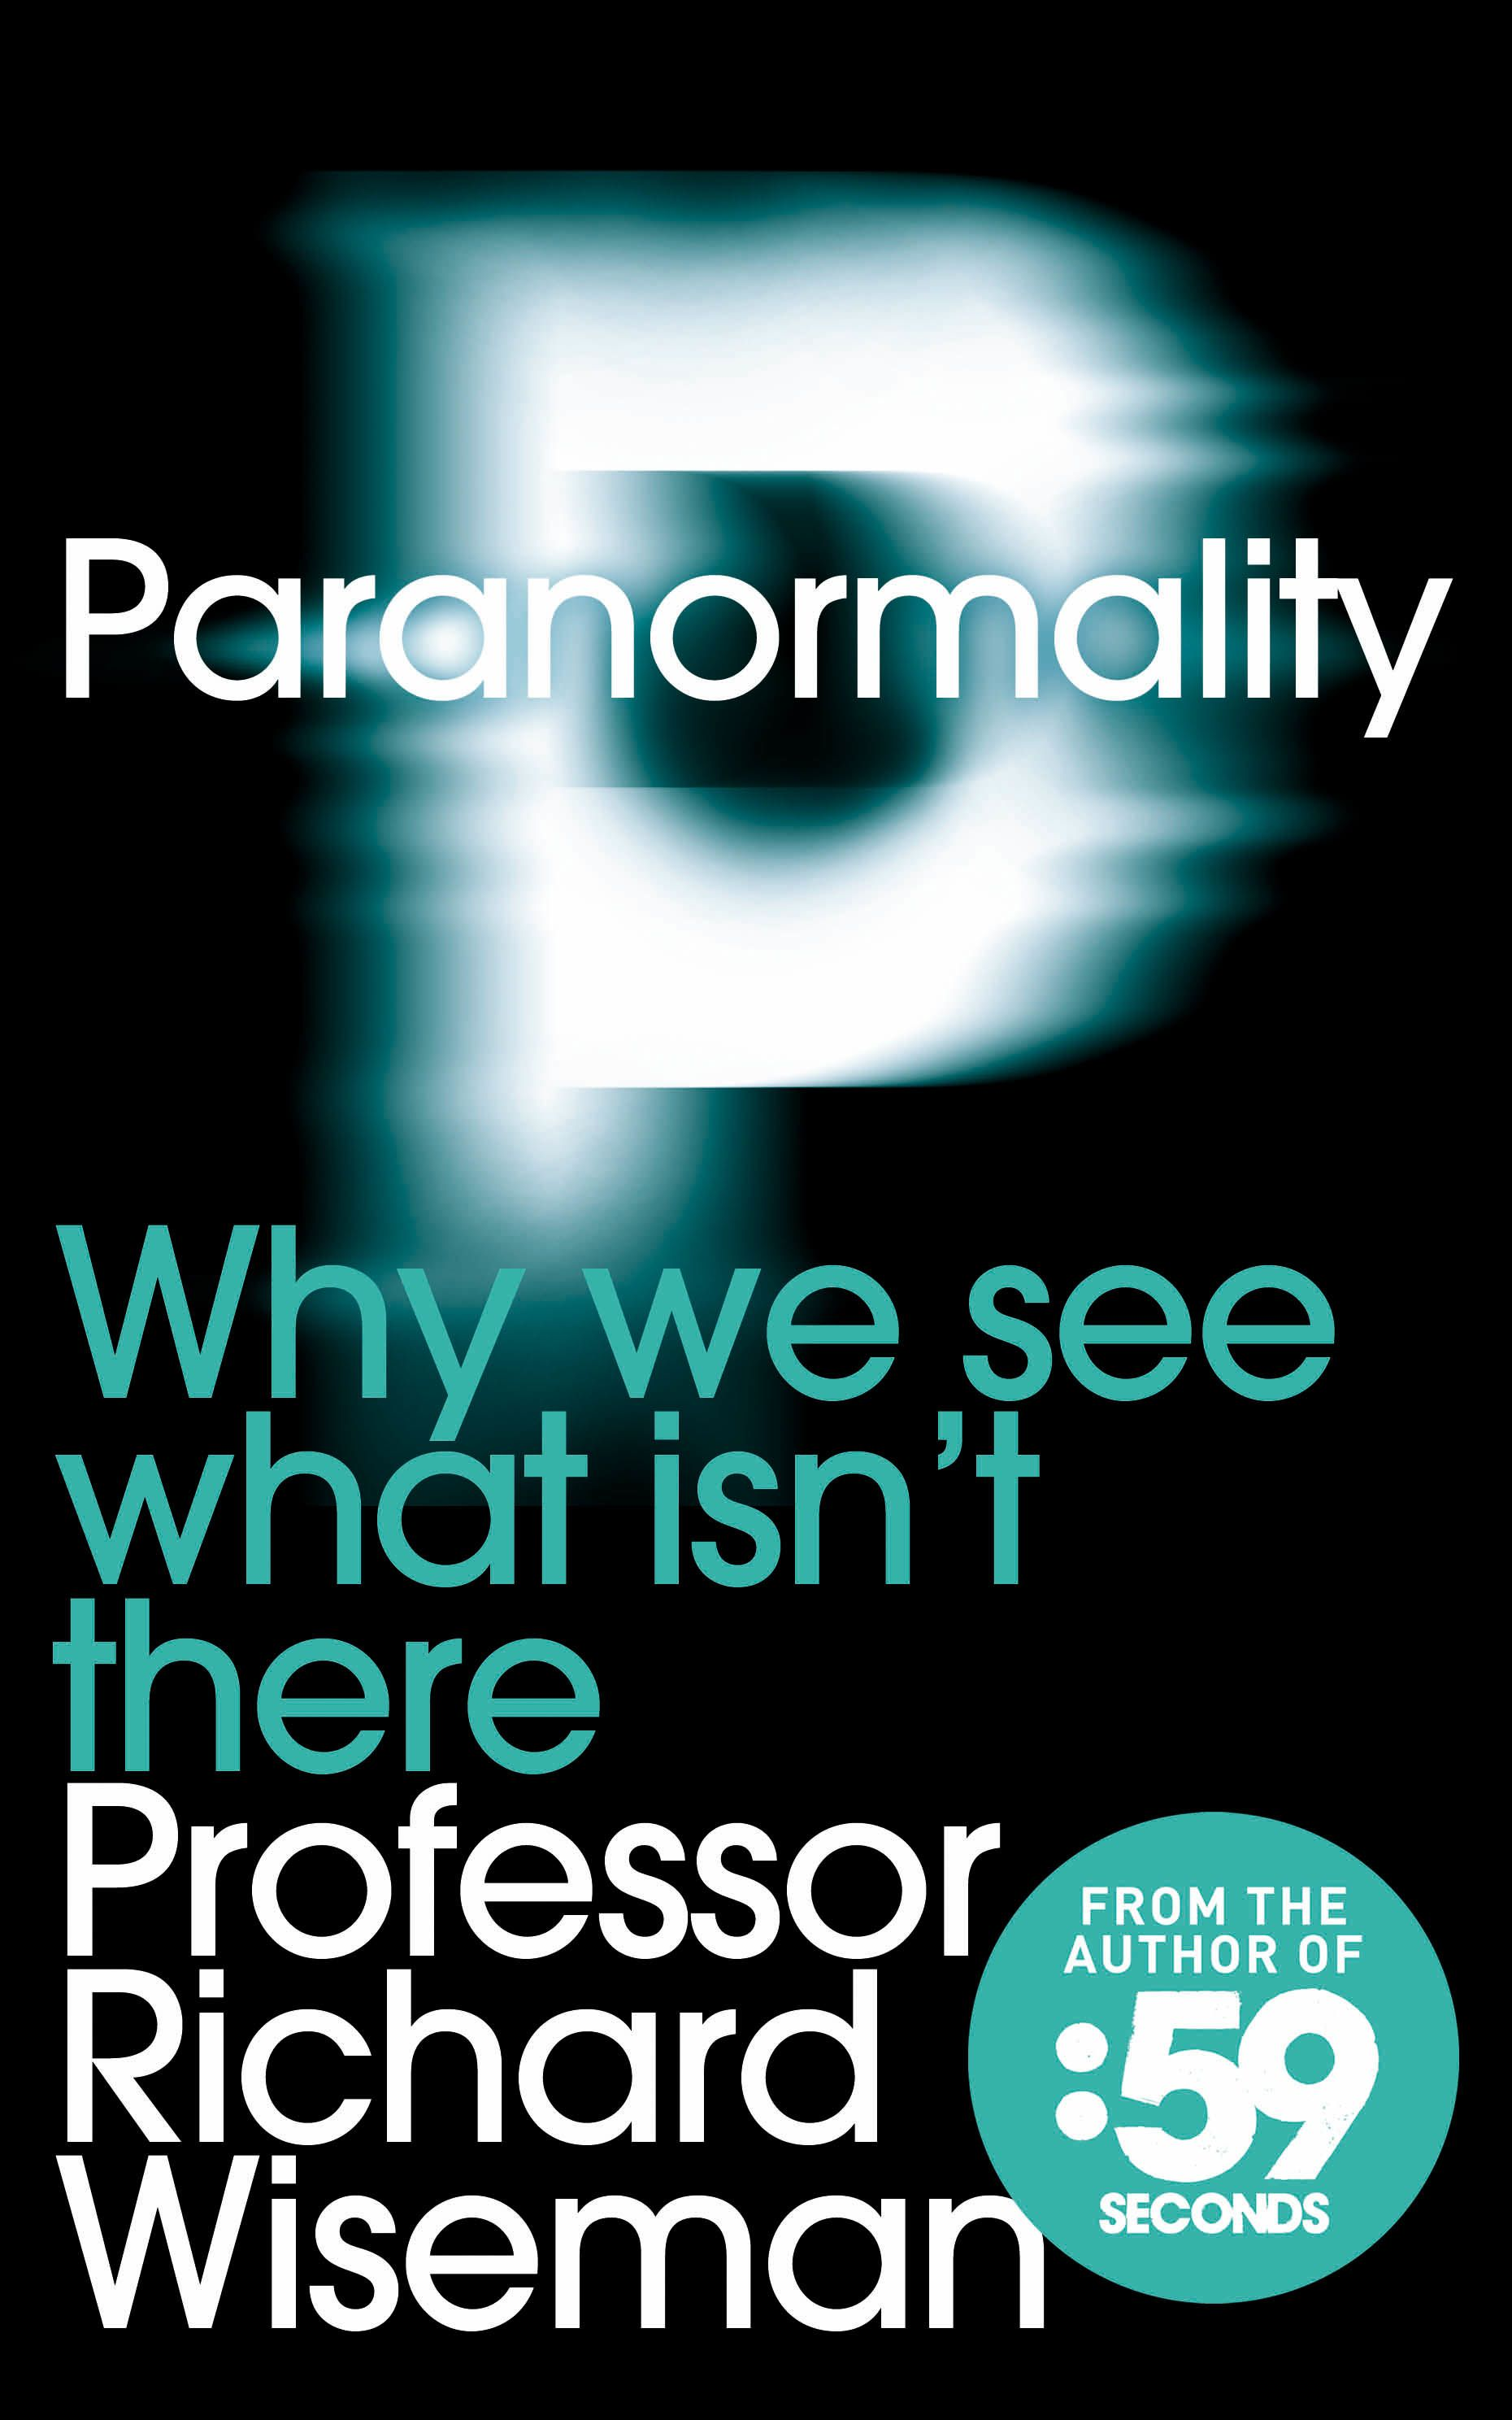 59 Seconds Richard Wiseman paranormality: why we see what isn't there - professor